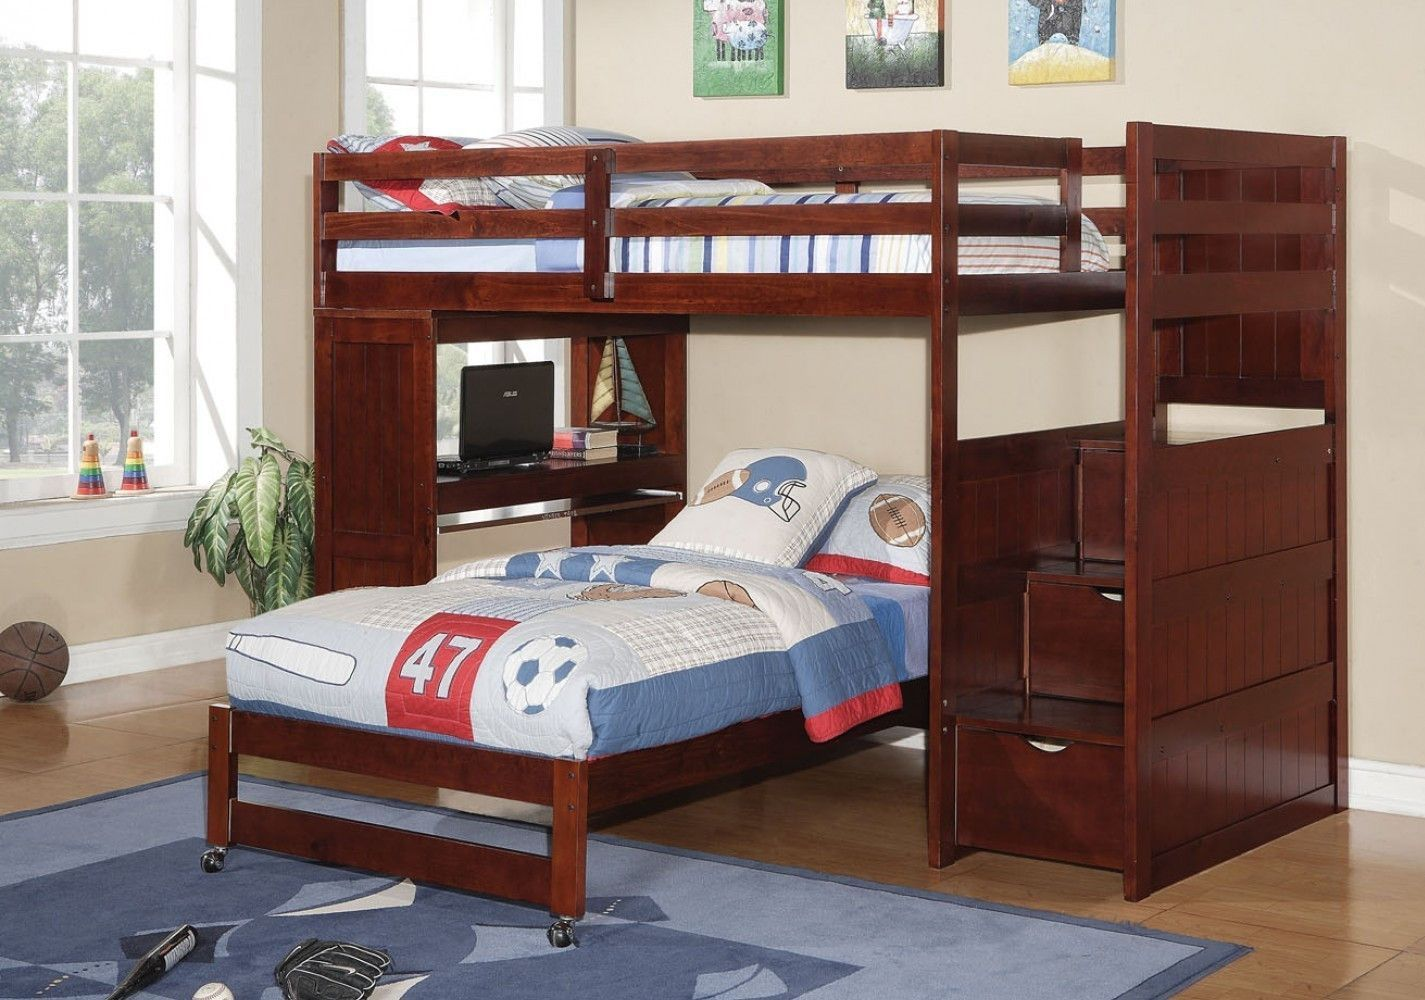 Our Bedroom Furniture Set Featuring A Twin Over Twin Bunk Bed With Desk  Underneath Is The